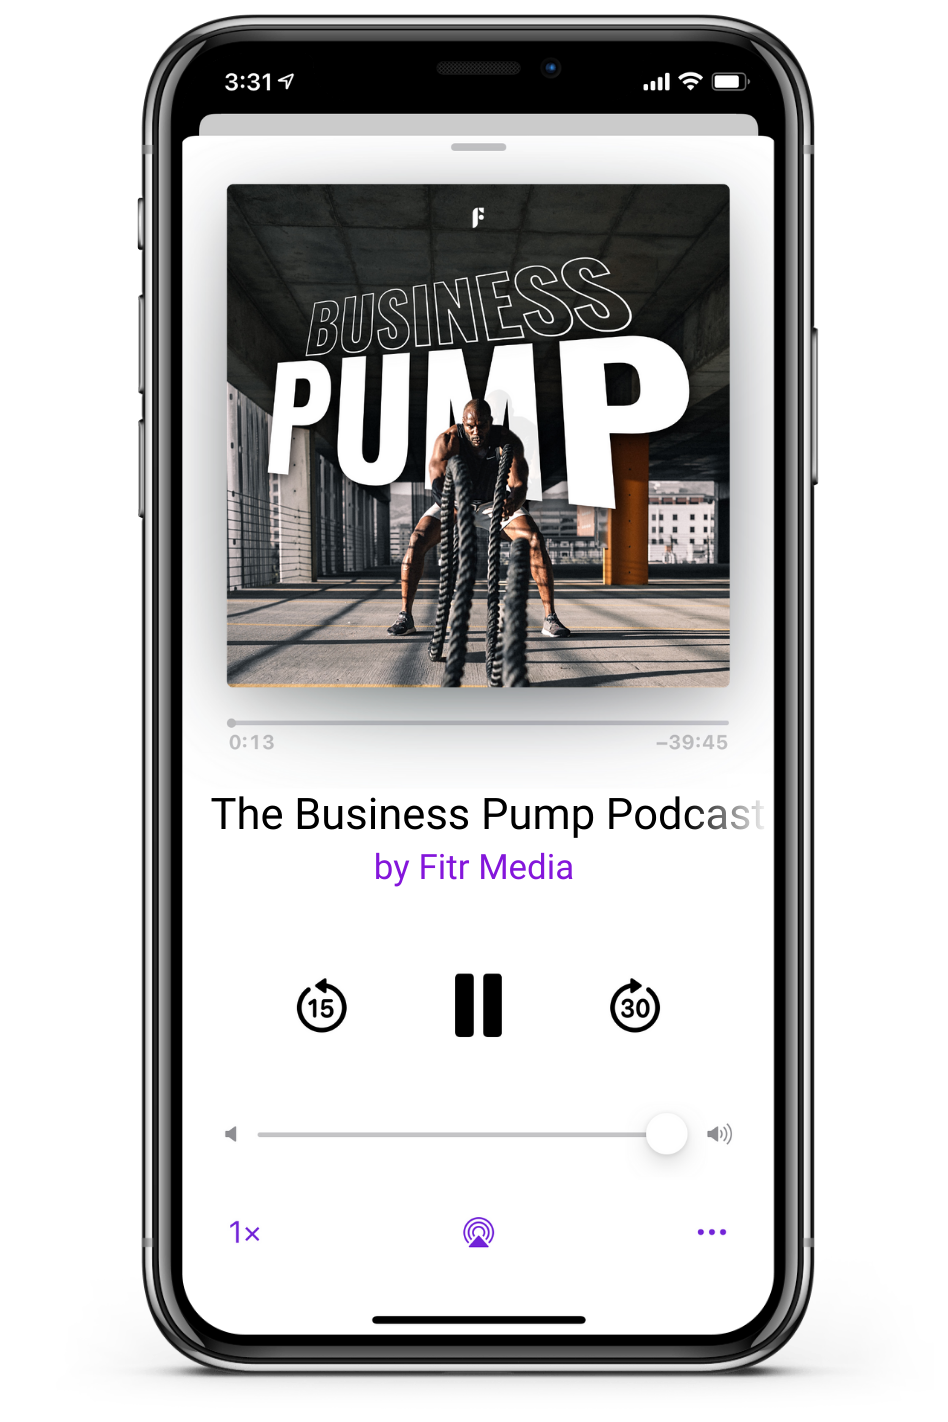 Business Pump podcast on iPhone